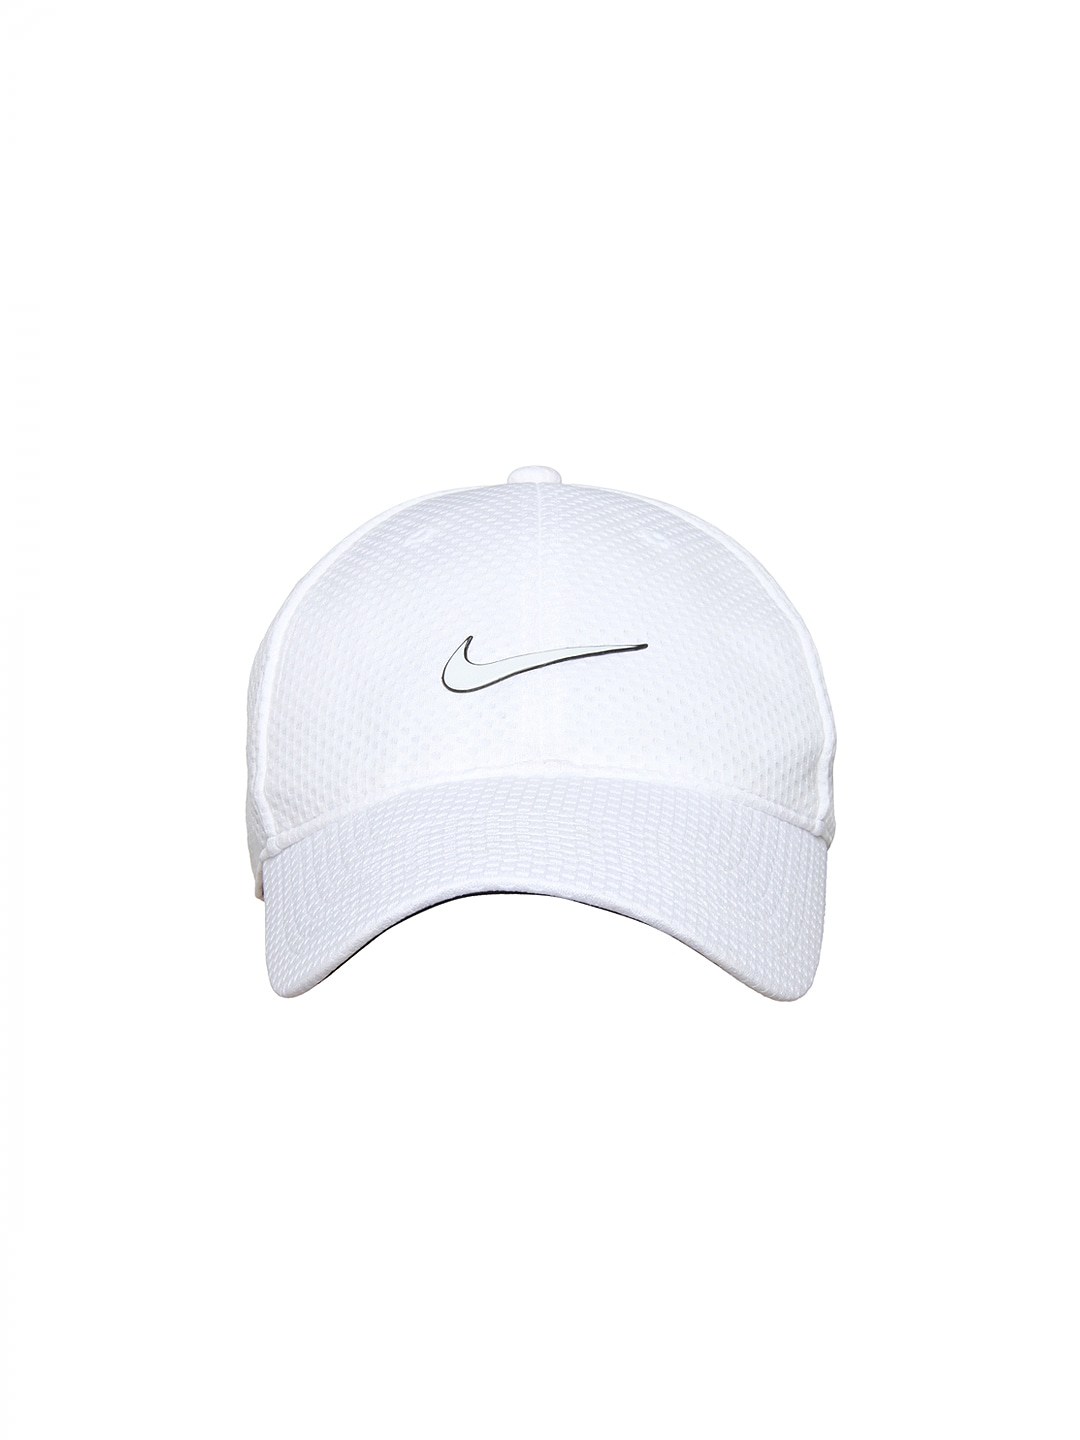 Nike 480387-100 Unisex White Mesh Heritage Training Cap- Price in India 1b84e83a5870